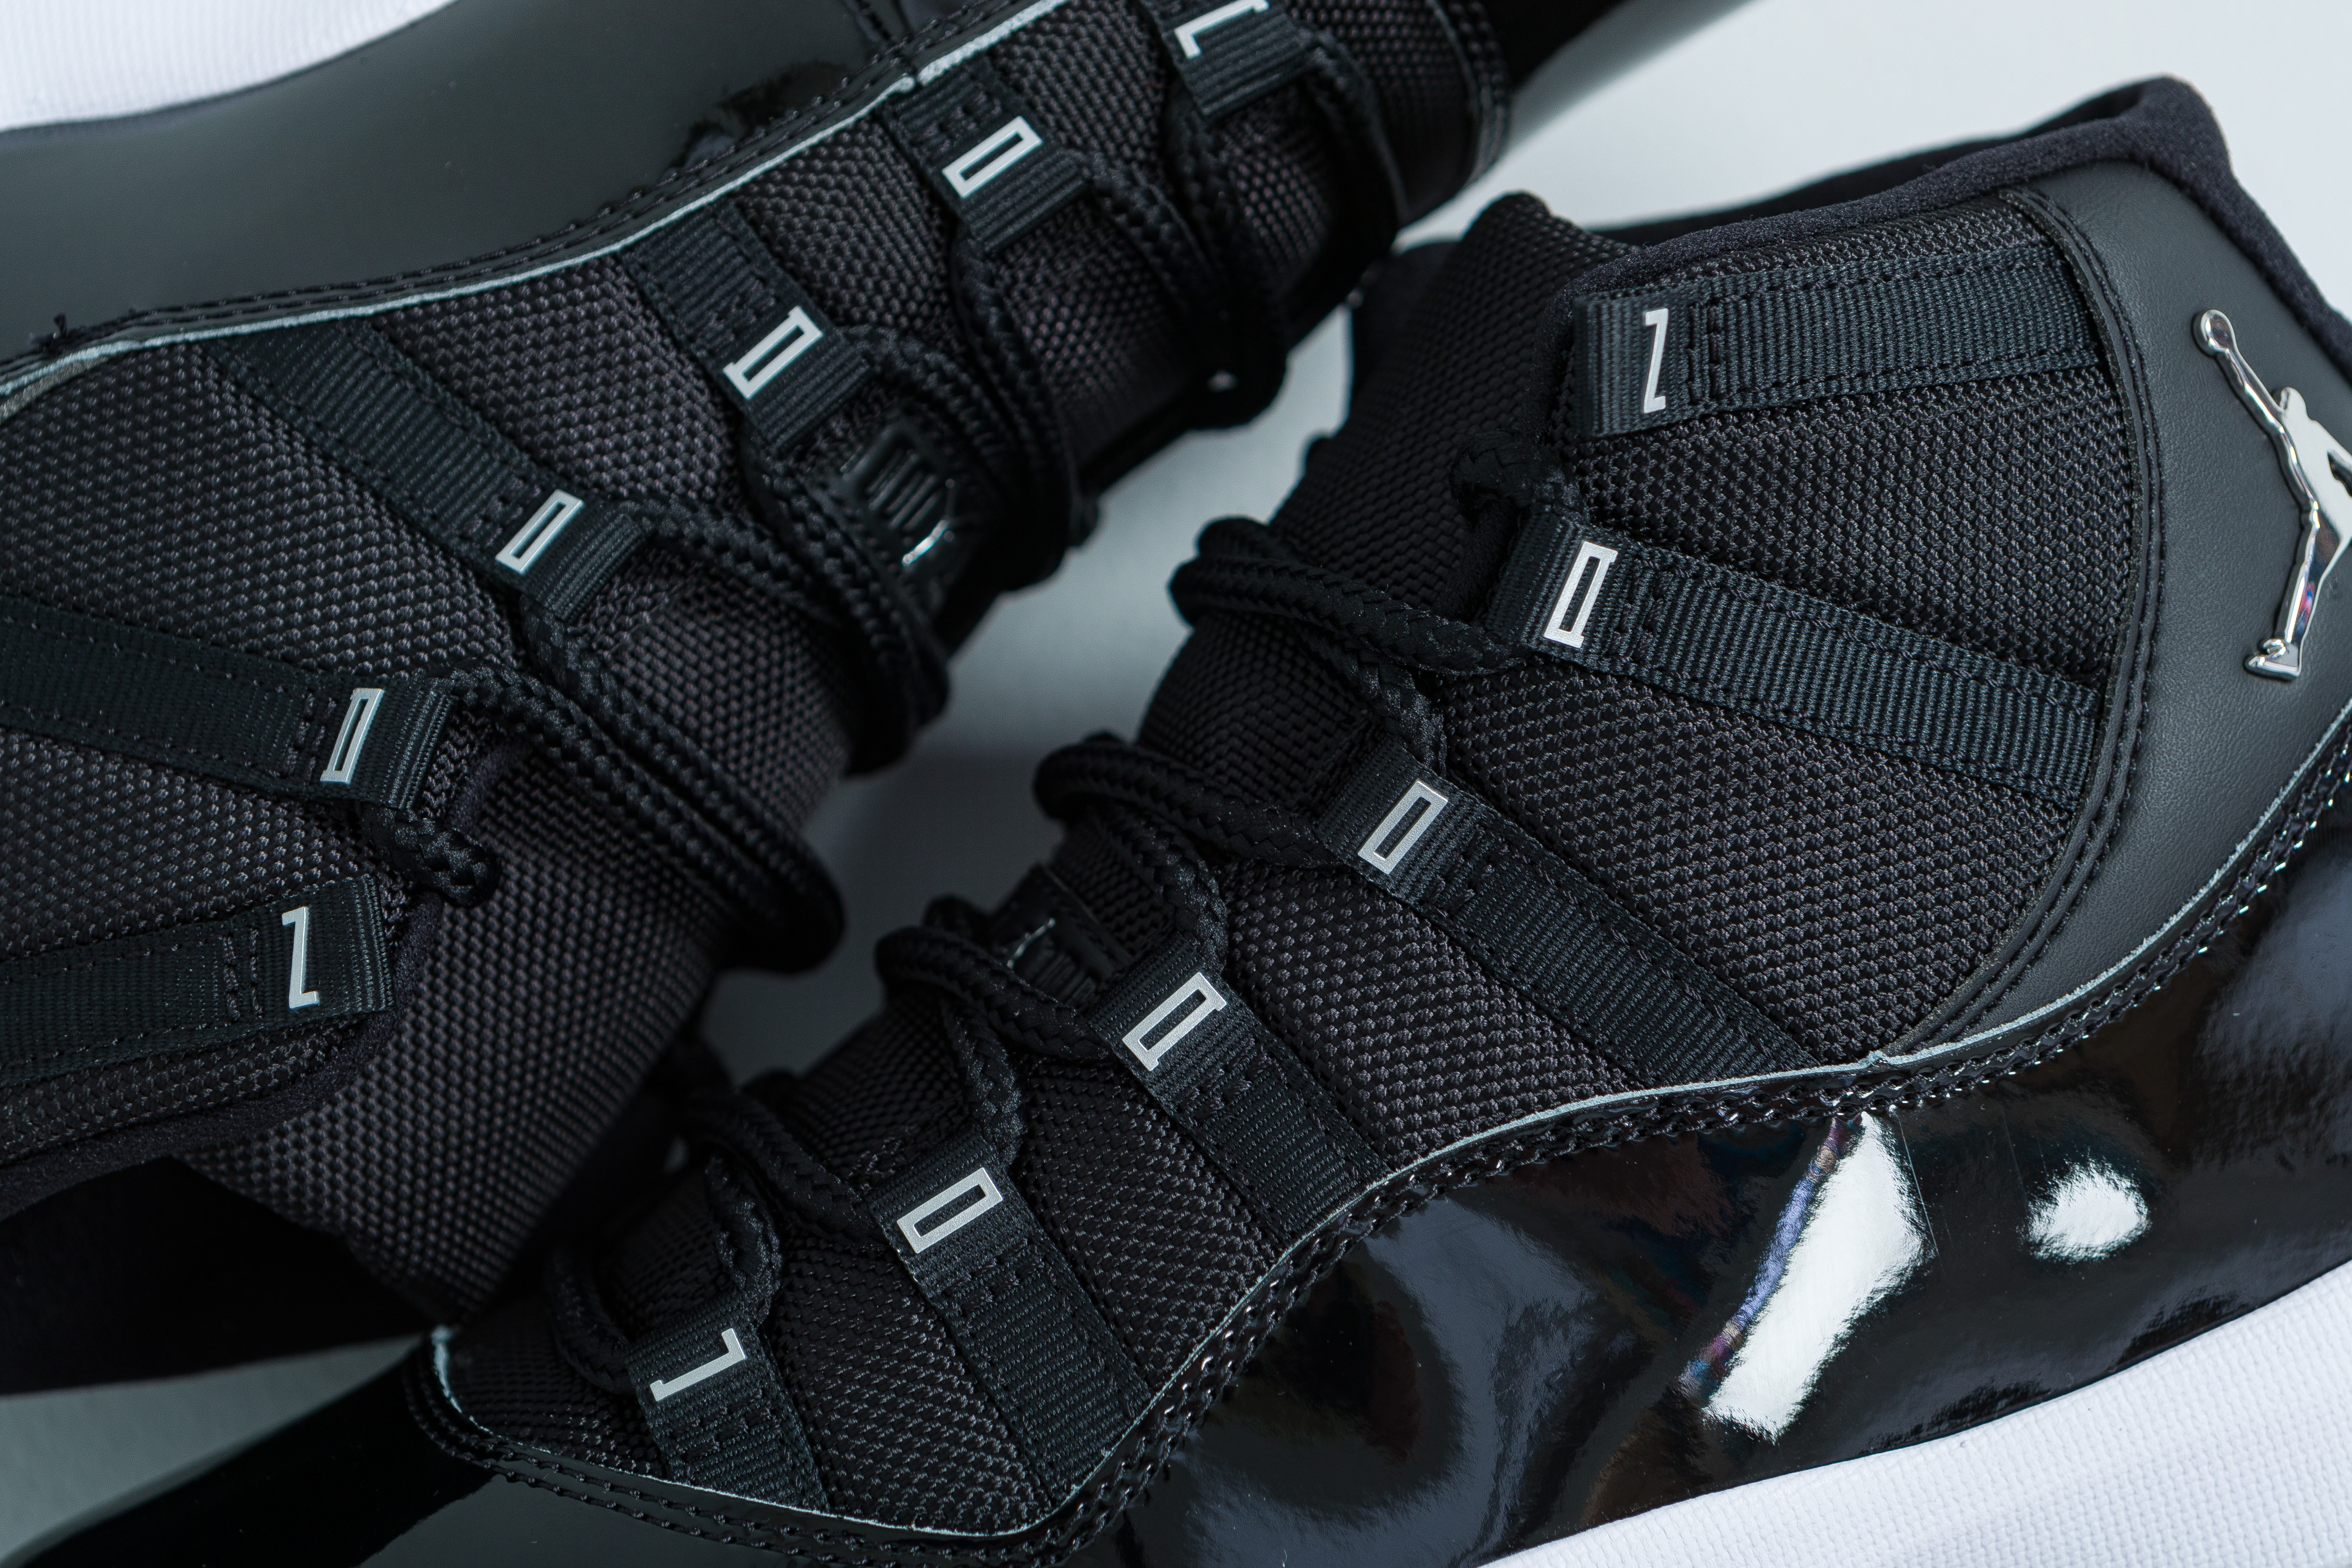 Up There Launches - Nike Air Jordan 11 Retro 'Jubilee'